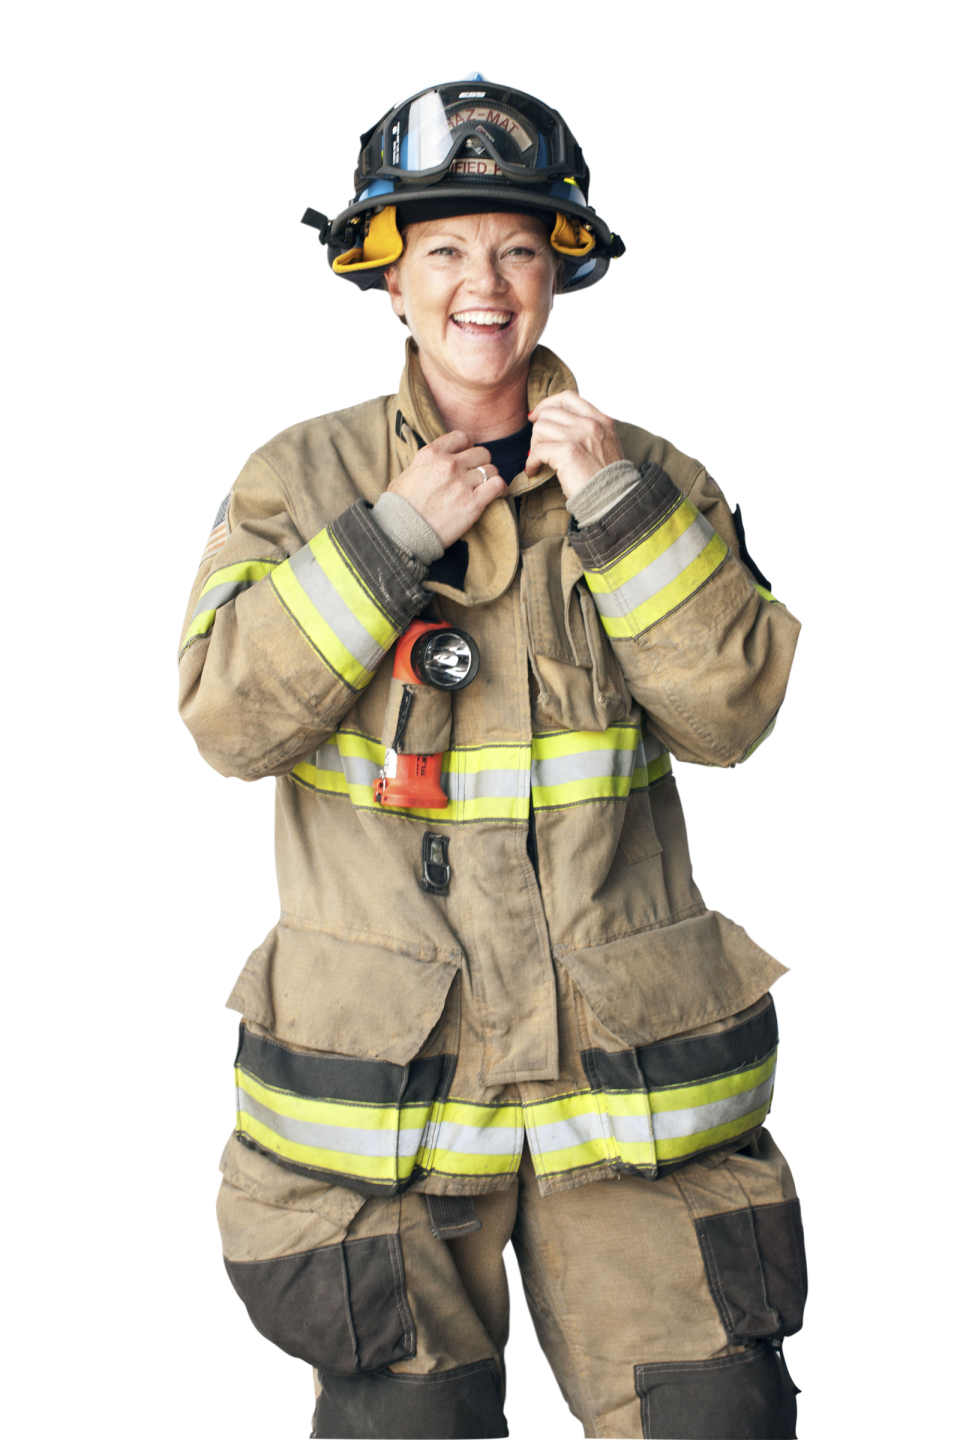 Firefighter PNG Image